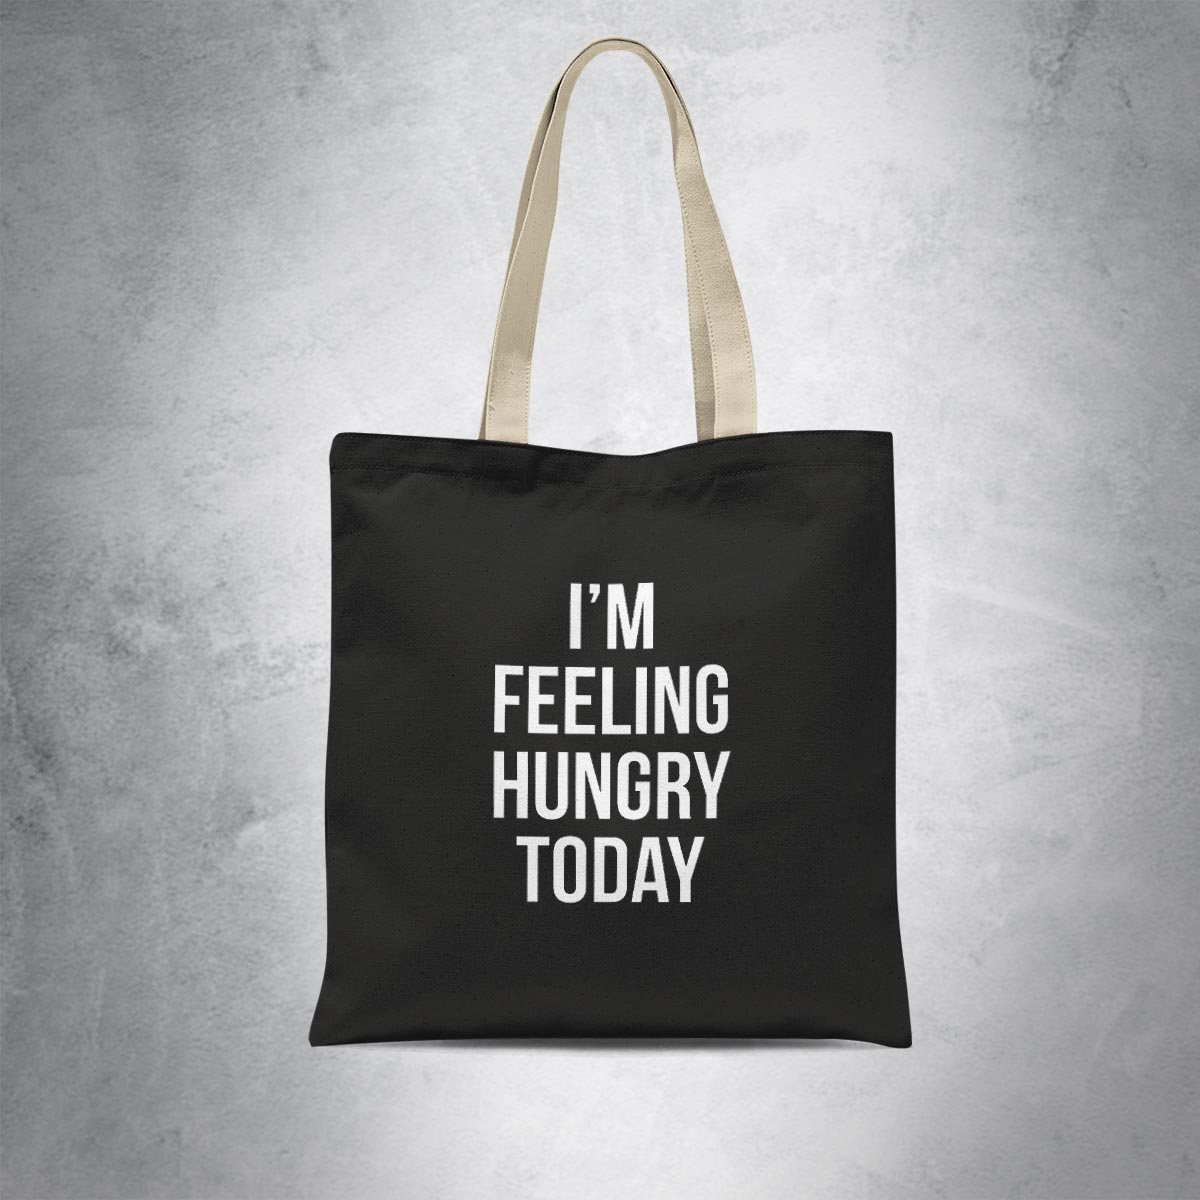 HOUSE OF CARDS - I'm feeling hungry today